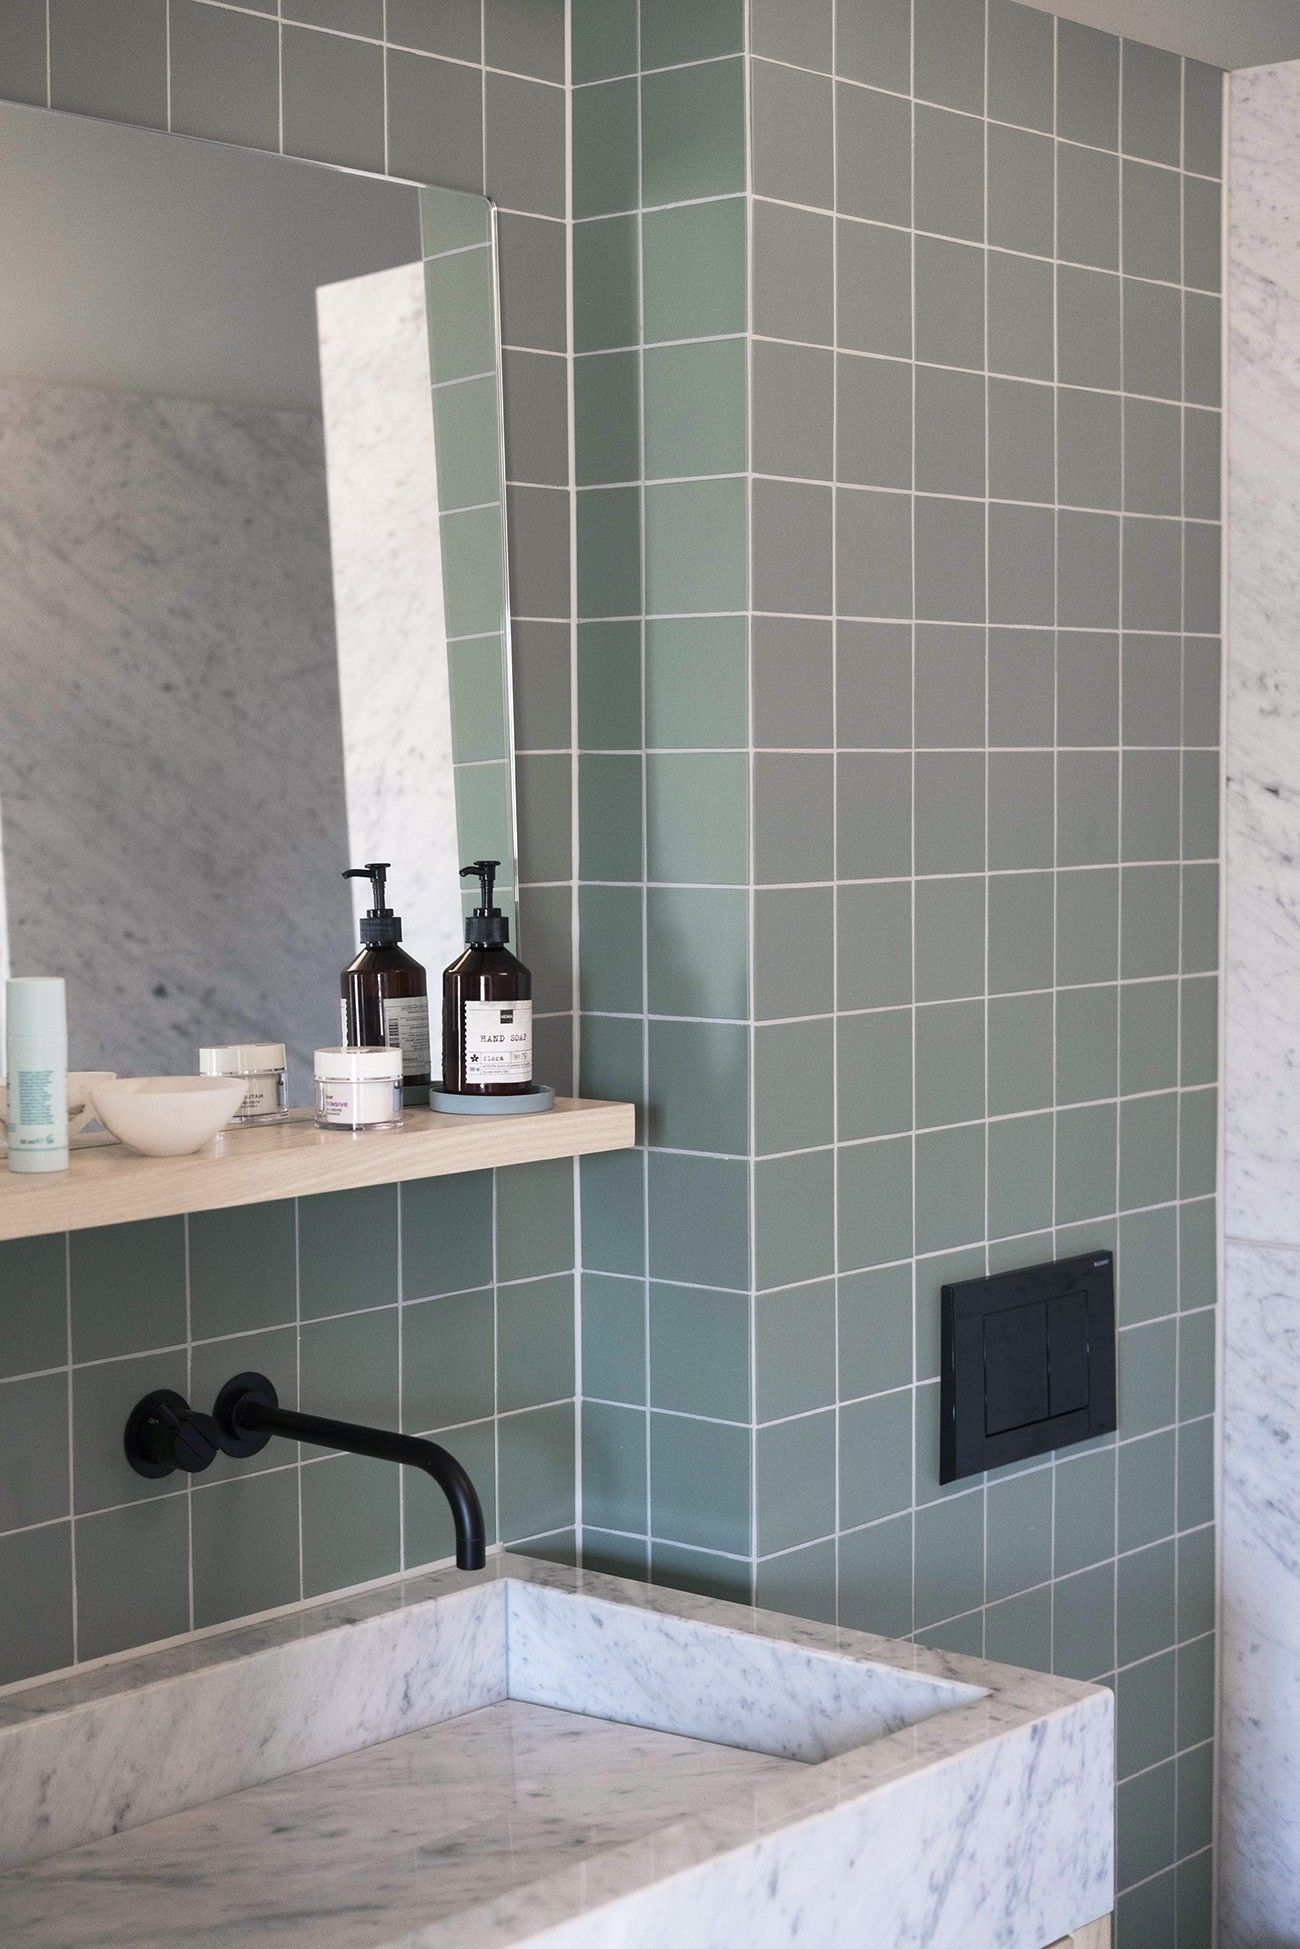 COCOON Bathroom Tiles Ideas Bycocoon.com | Bathroom Wall Tiles | Bathroom  Design | Modern